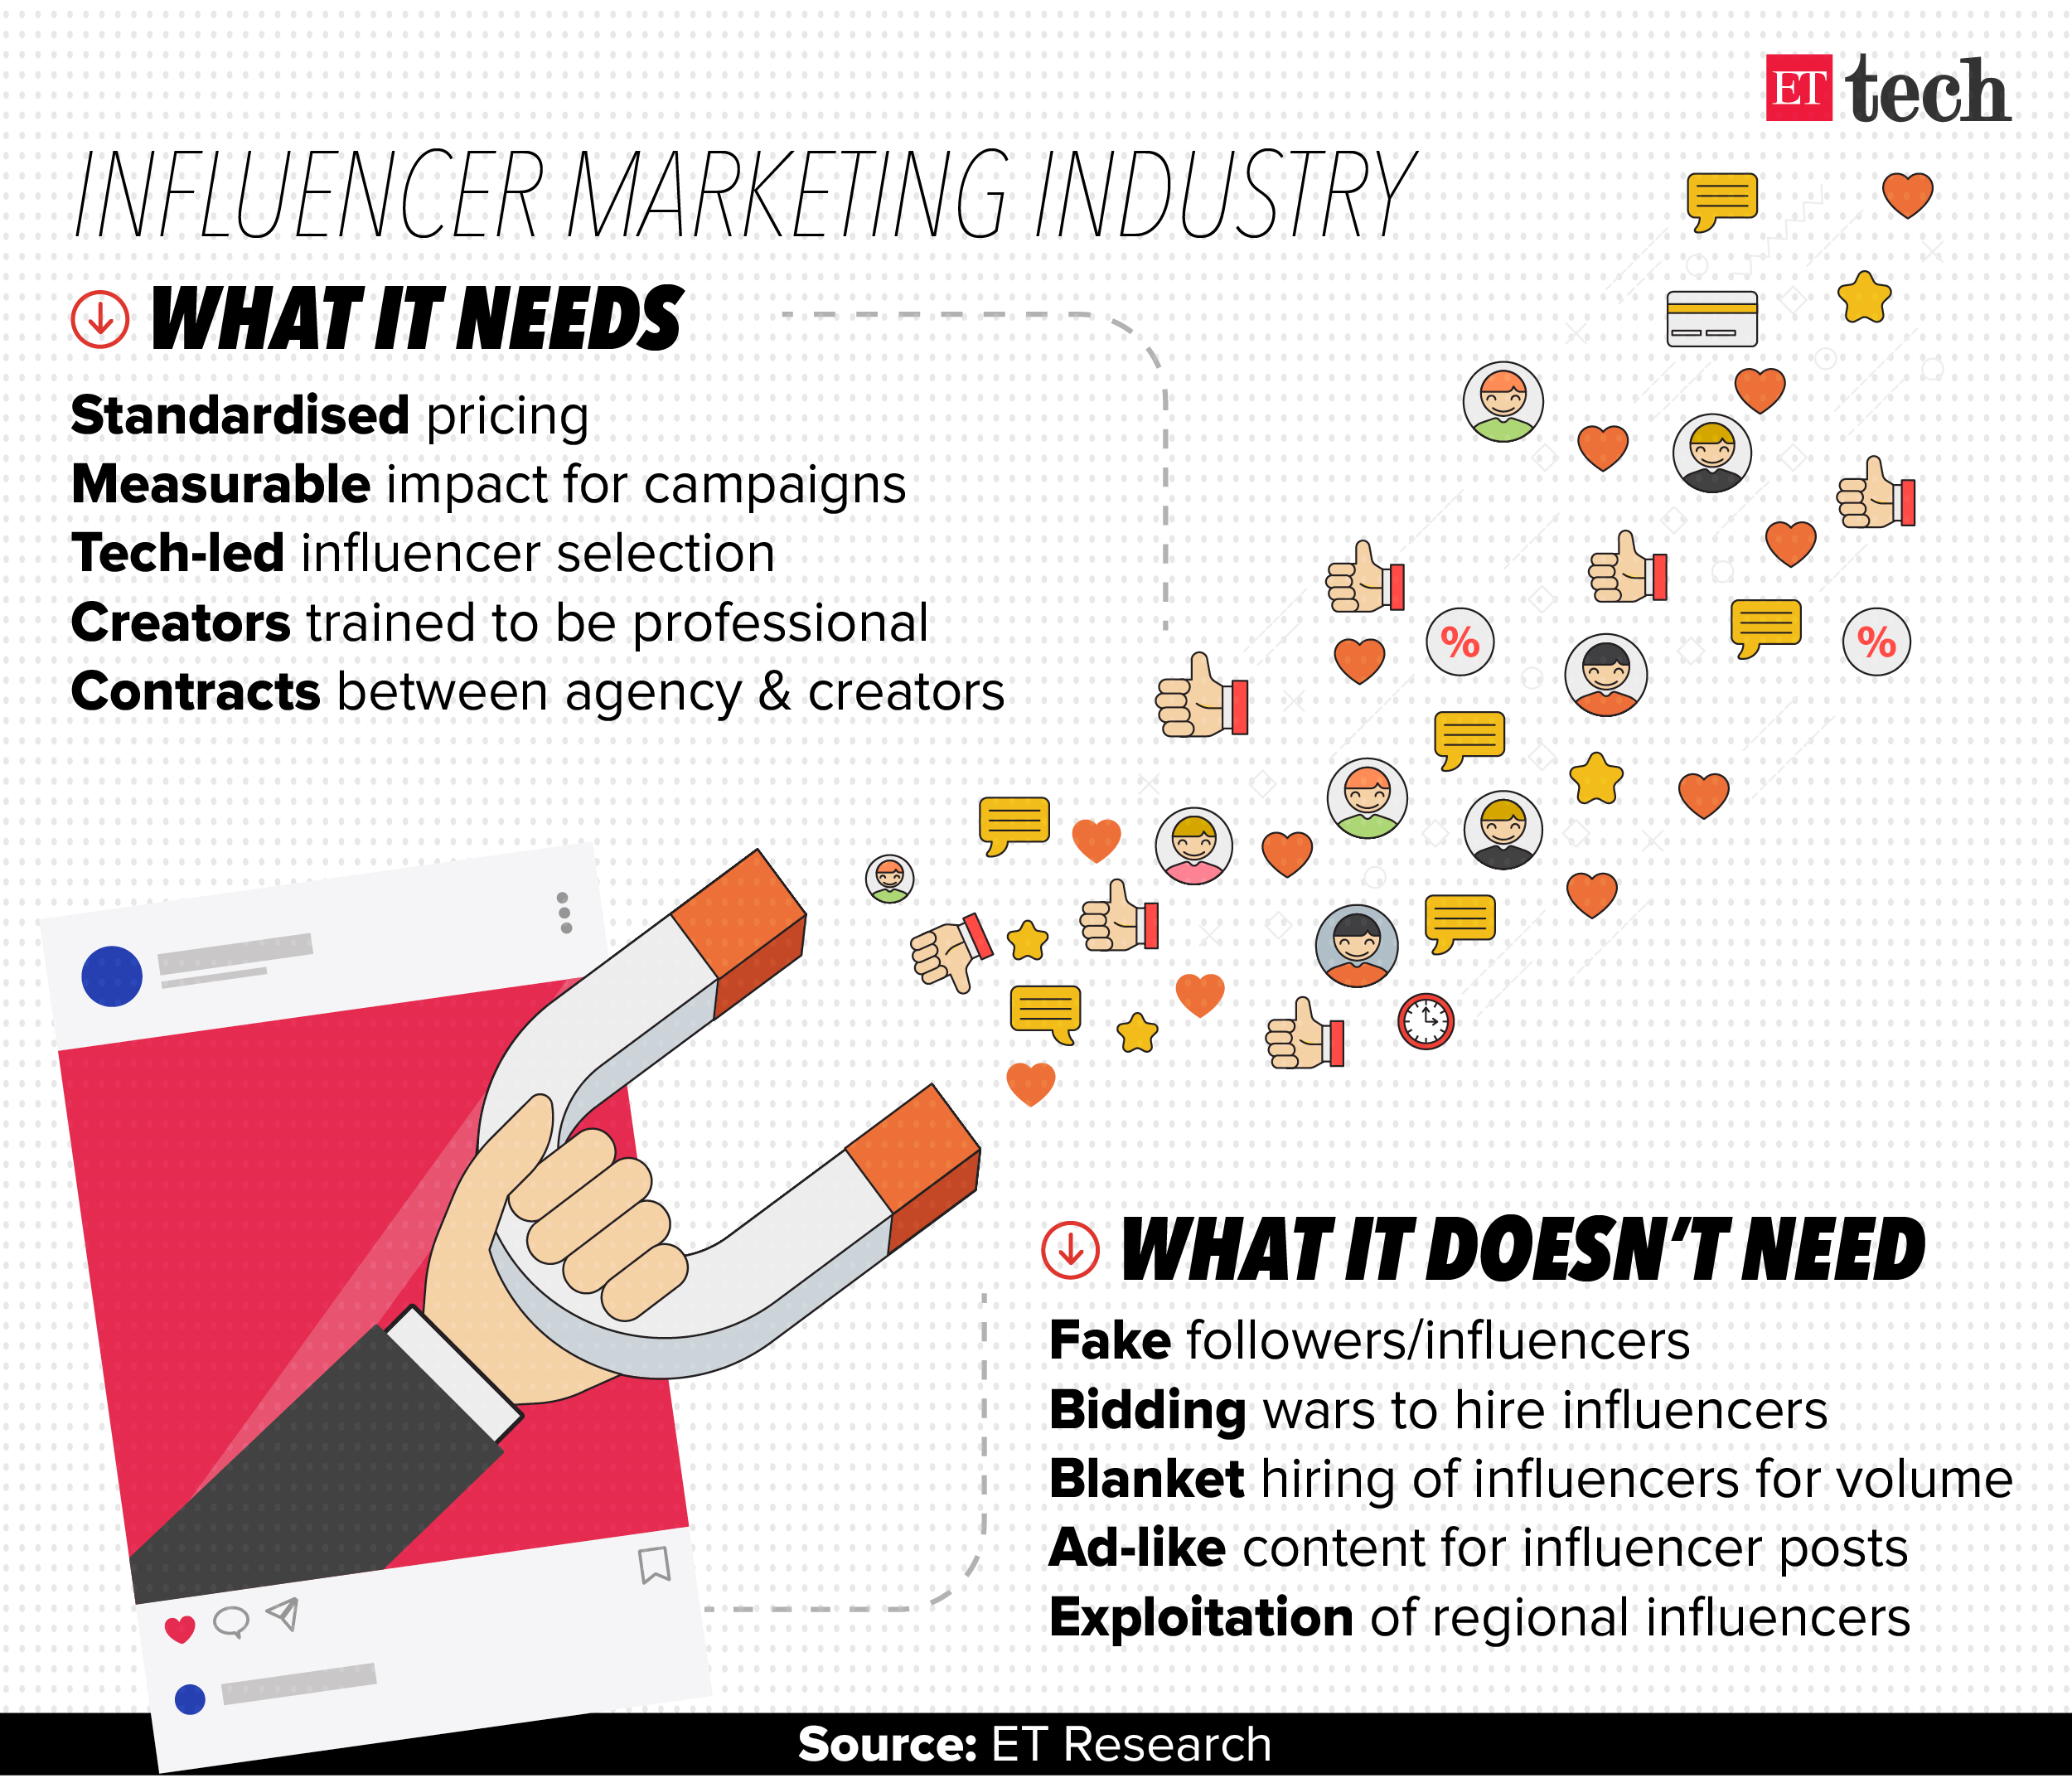 Influencer marketing has a big fake followers issue but that's not the only problem